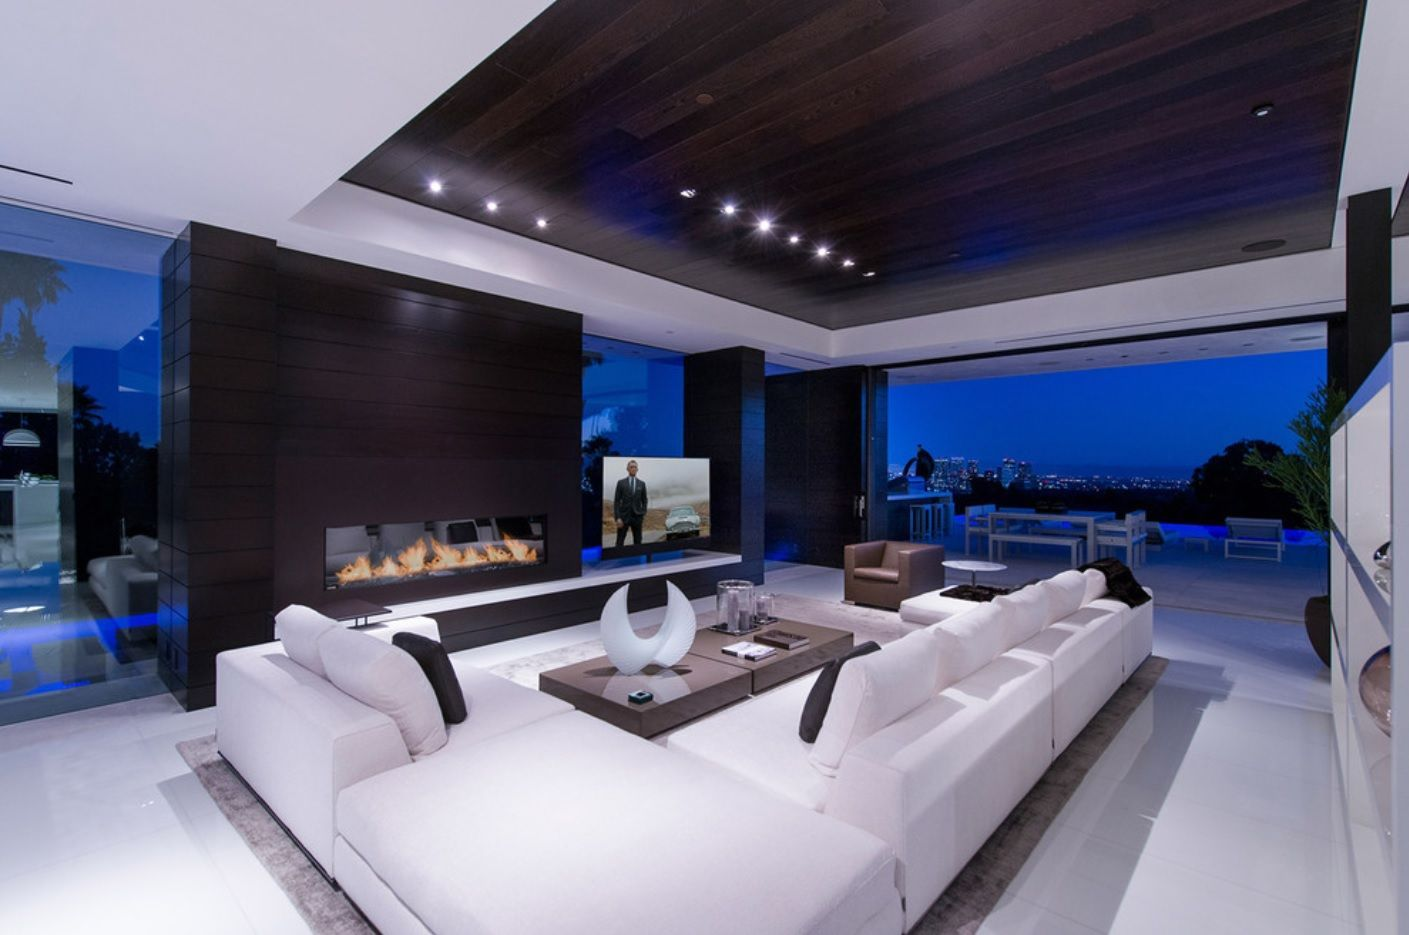 Grandeur futuristic lounge room interior design with white and black color mix and multilevel accentual ceiling